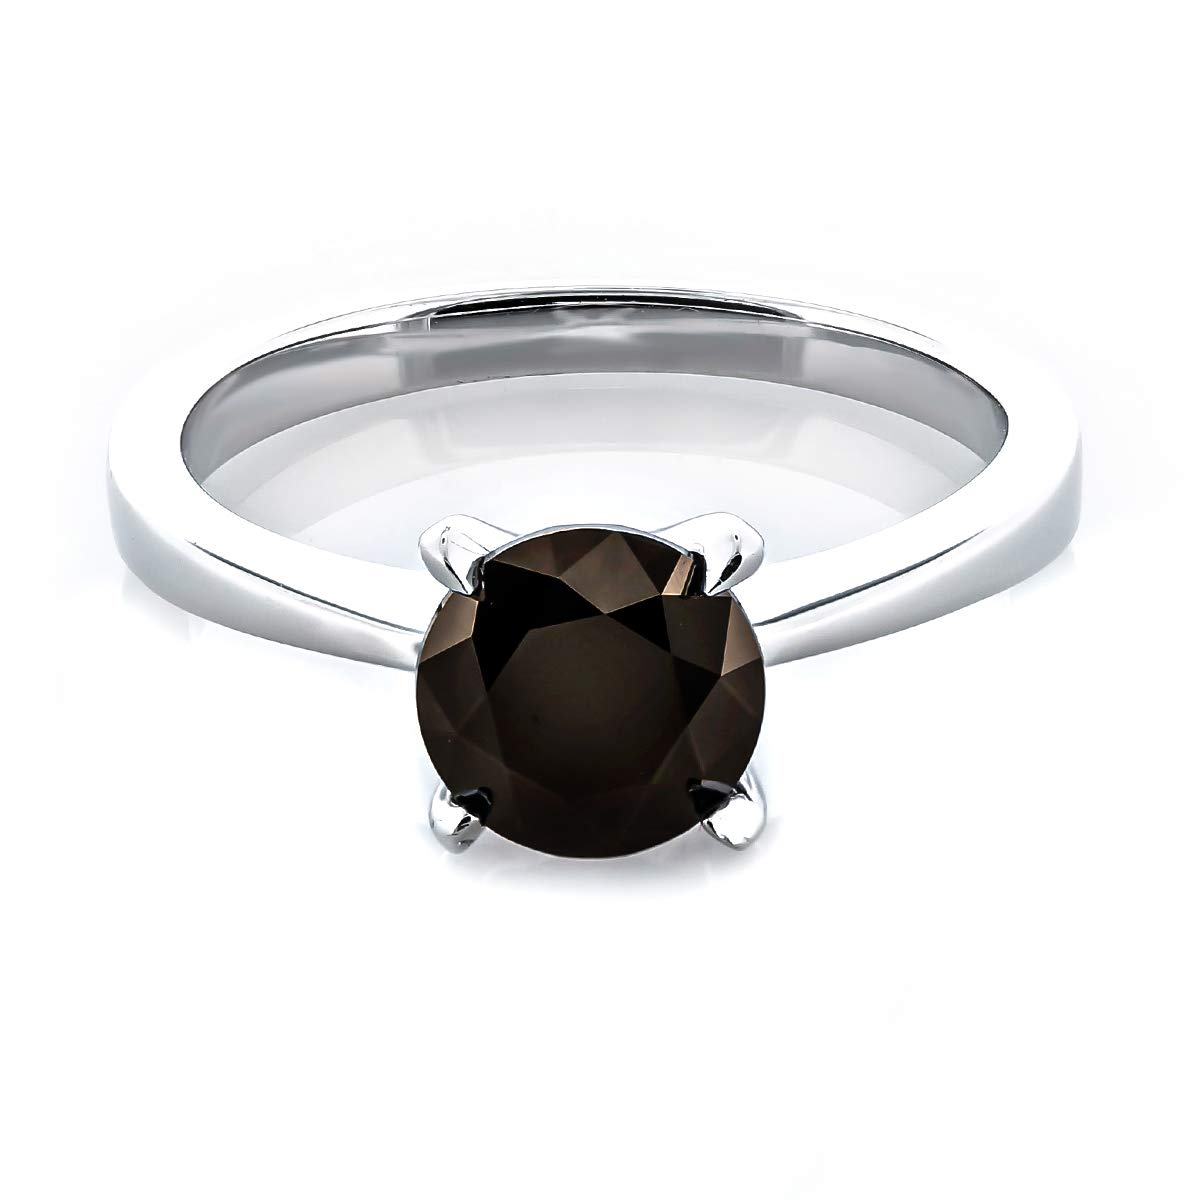 Baron Jewelry Platinum Plated .925 Sterling Silver 2 cttw Fancy Brown Round-Brilliant/_Shape Cubic Zirconia Solitaire Ring Made with Swarovski Zirconia